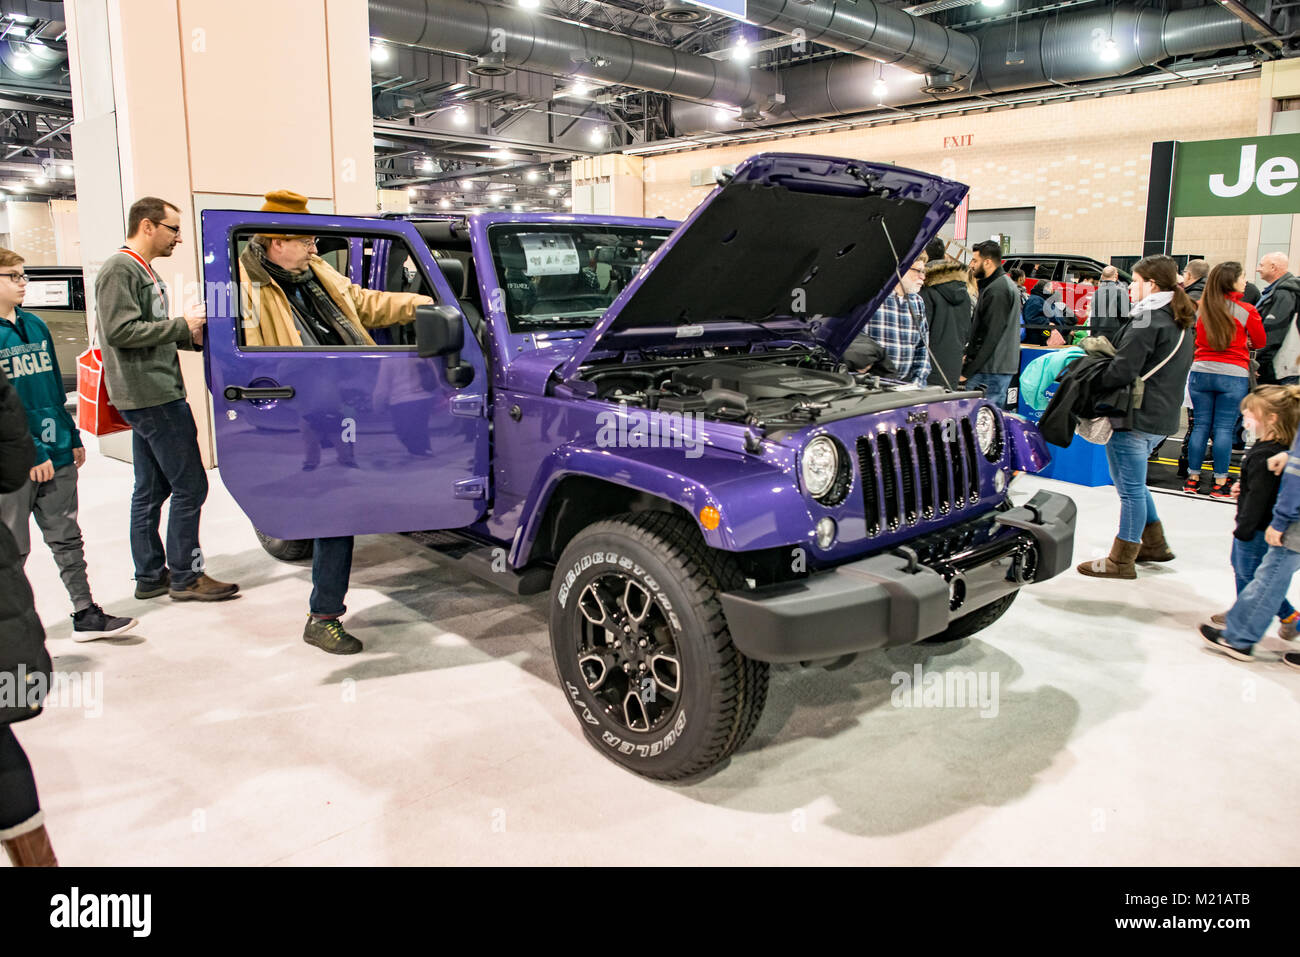 Philadelphia Auto Show Stock Photos Philadelphia Auto Show Stock - Philadelphia car show 2018